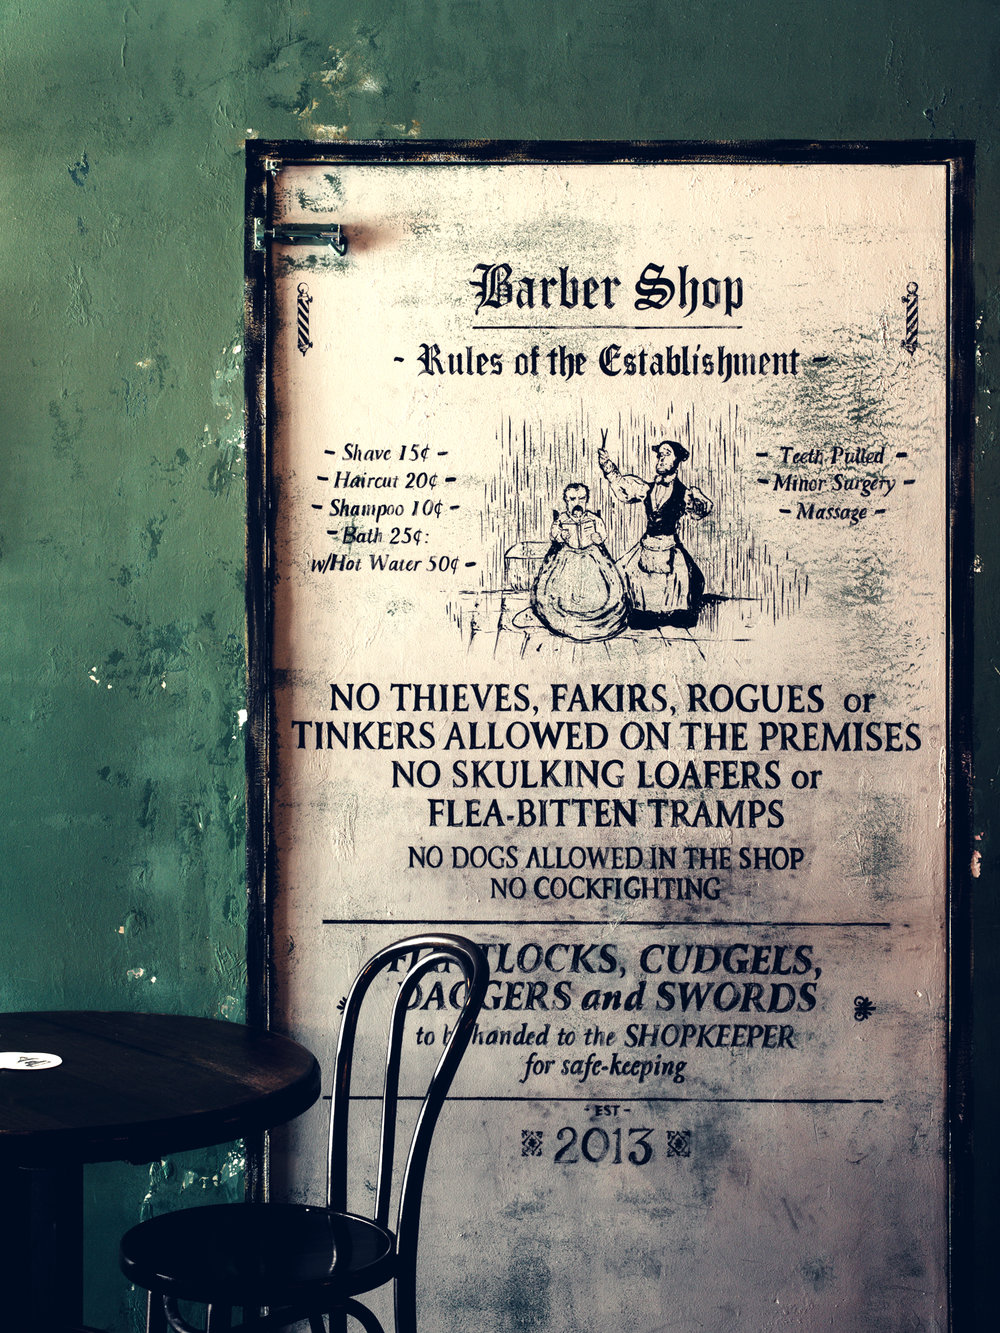 The Barber Shop - York St